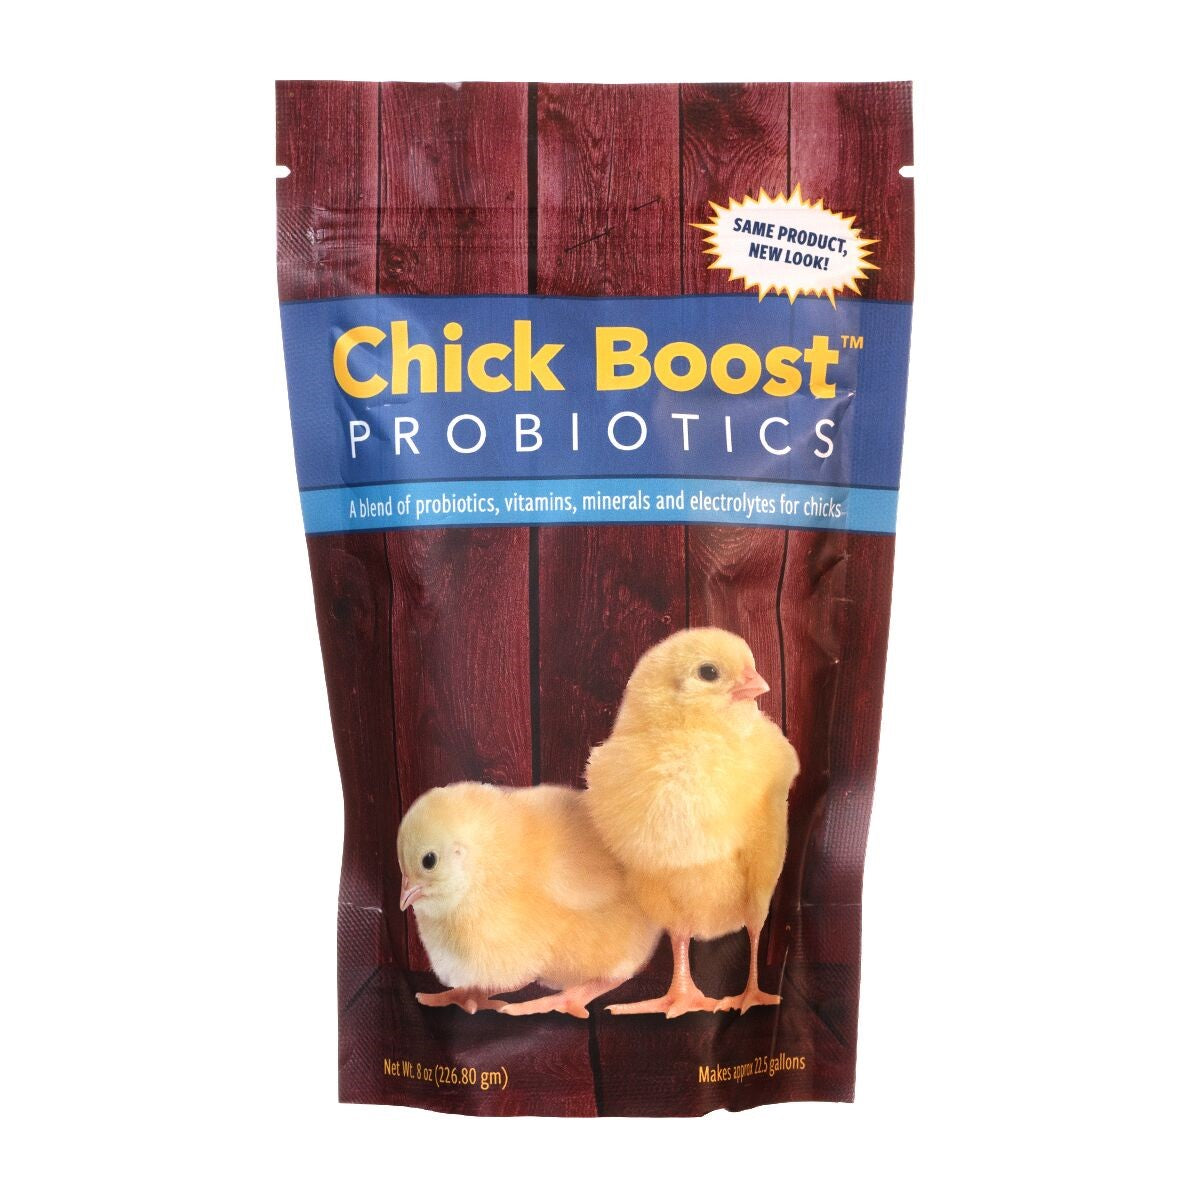 Chick Boost